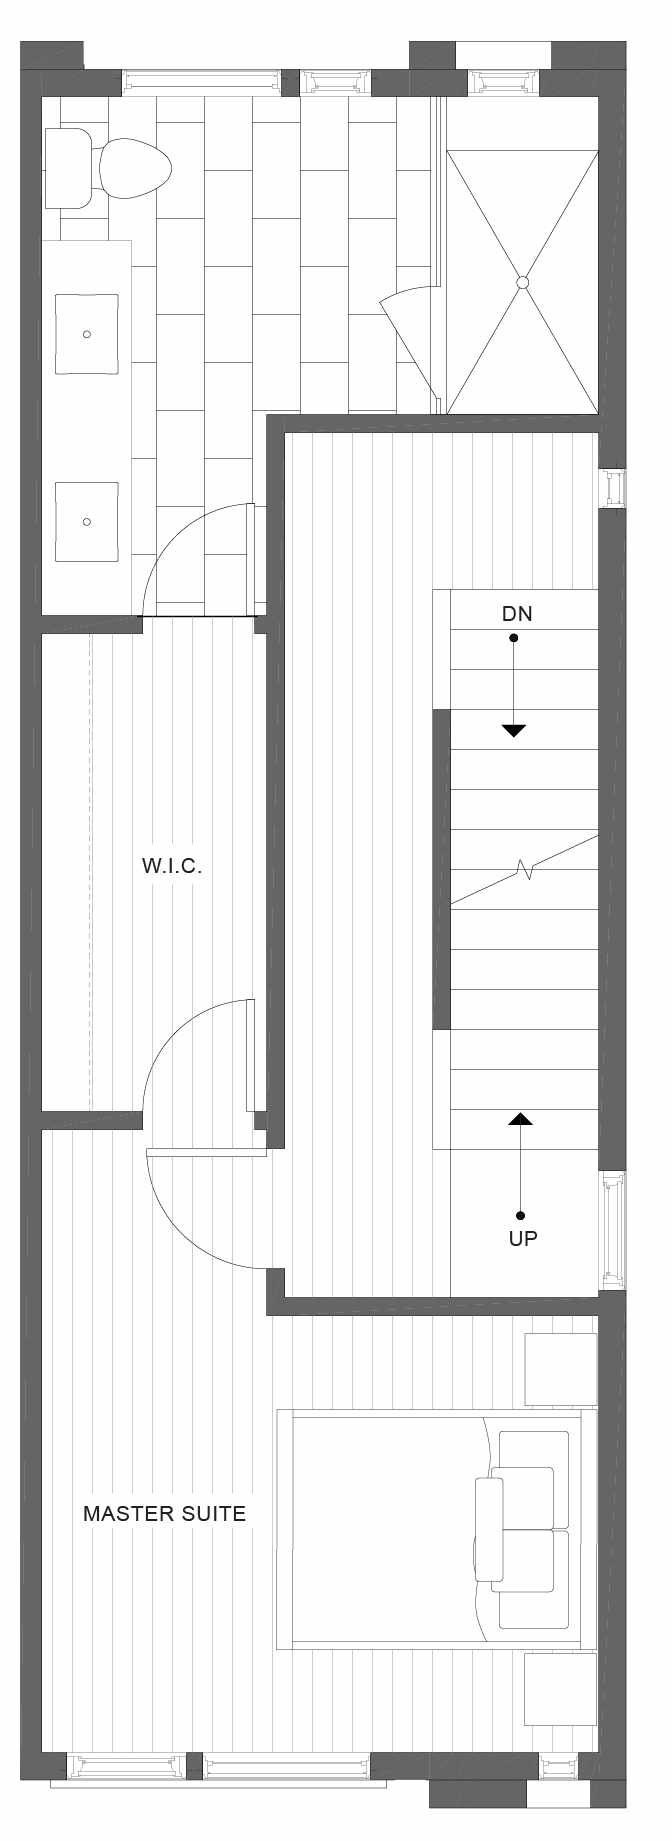 Third Floor Plan of 1330 E Spring St of the Corazon II Townhomes